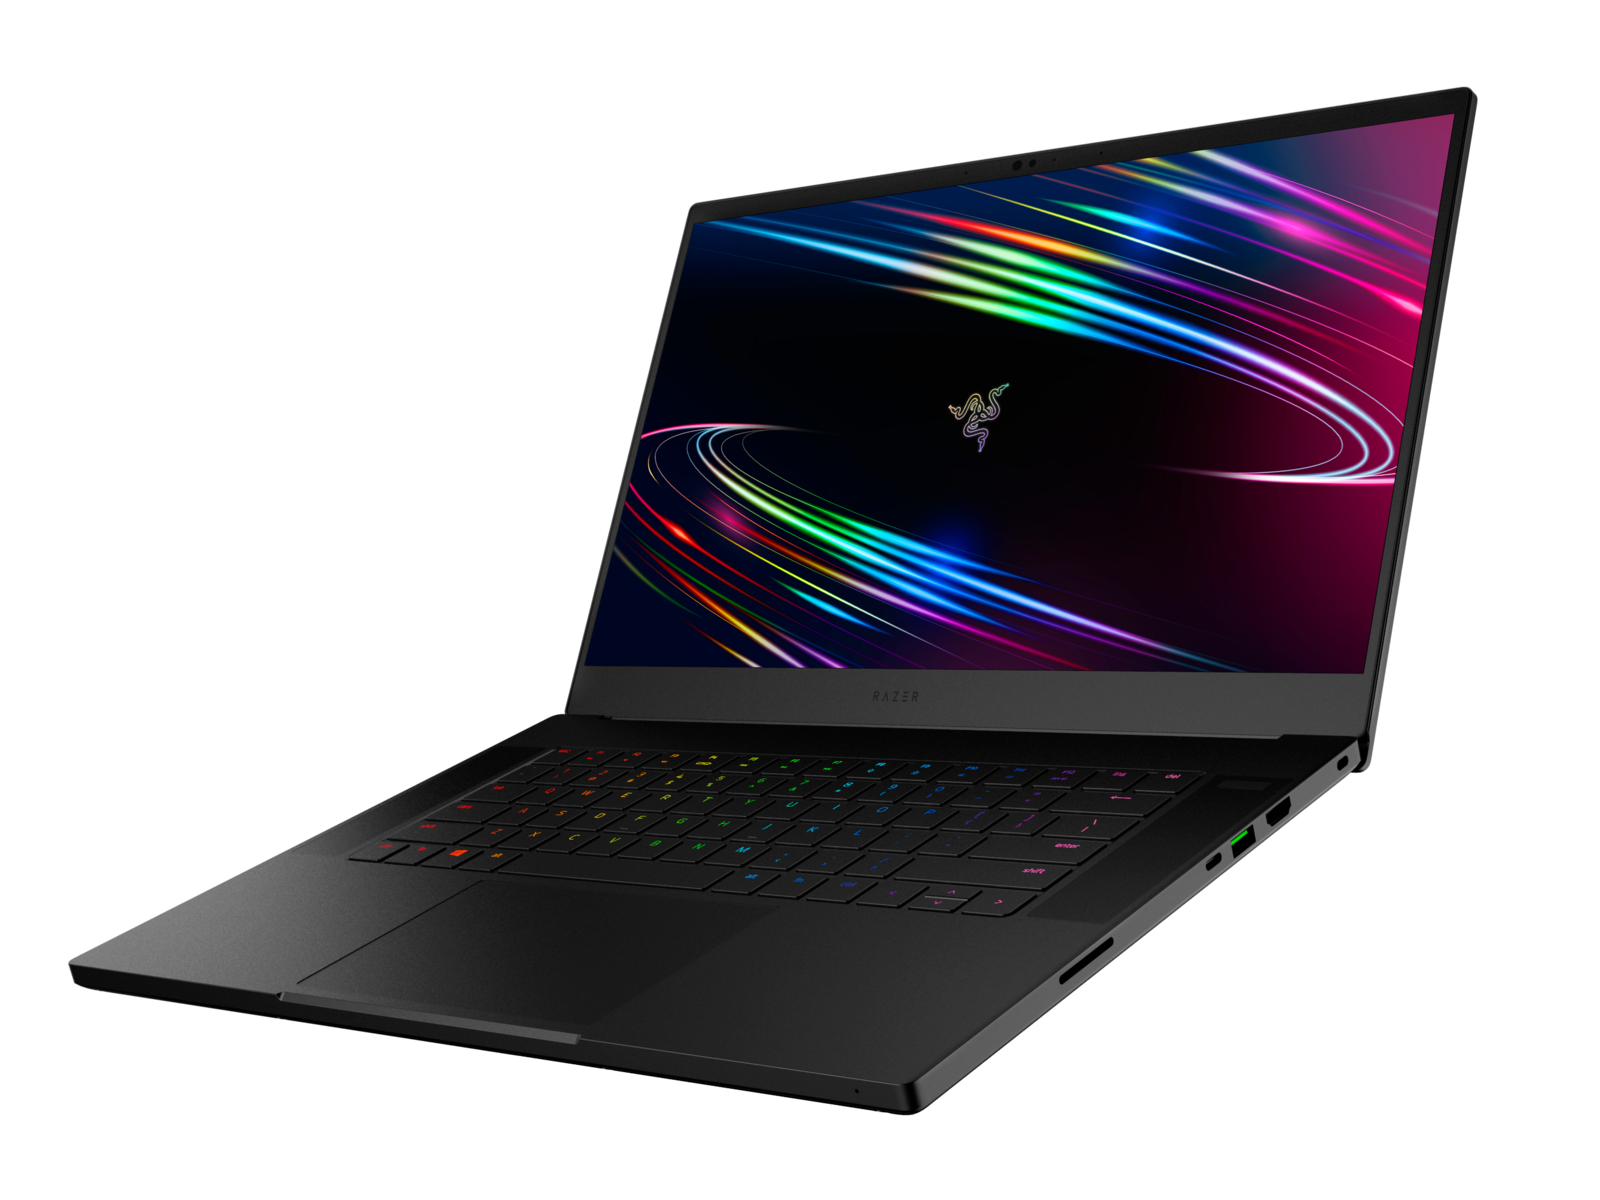 NVIDIA RTX Super Is Finally Coming to Gaming Laptops